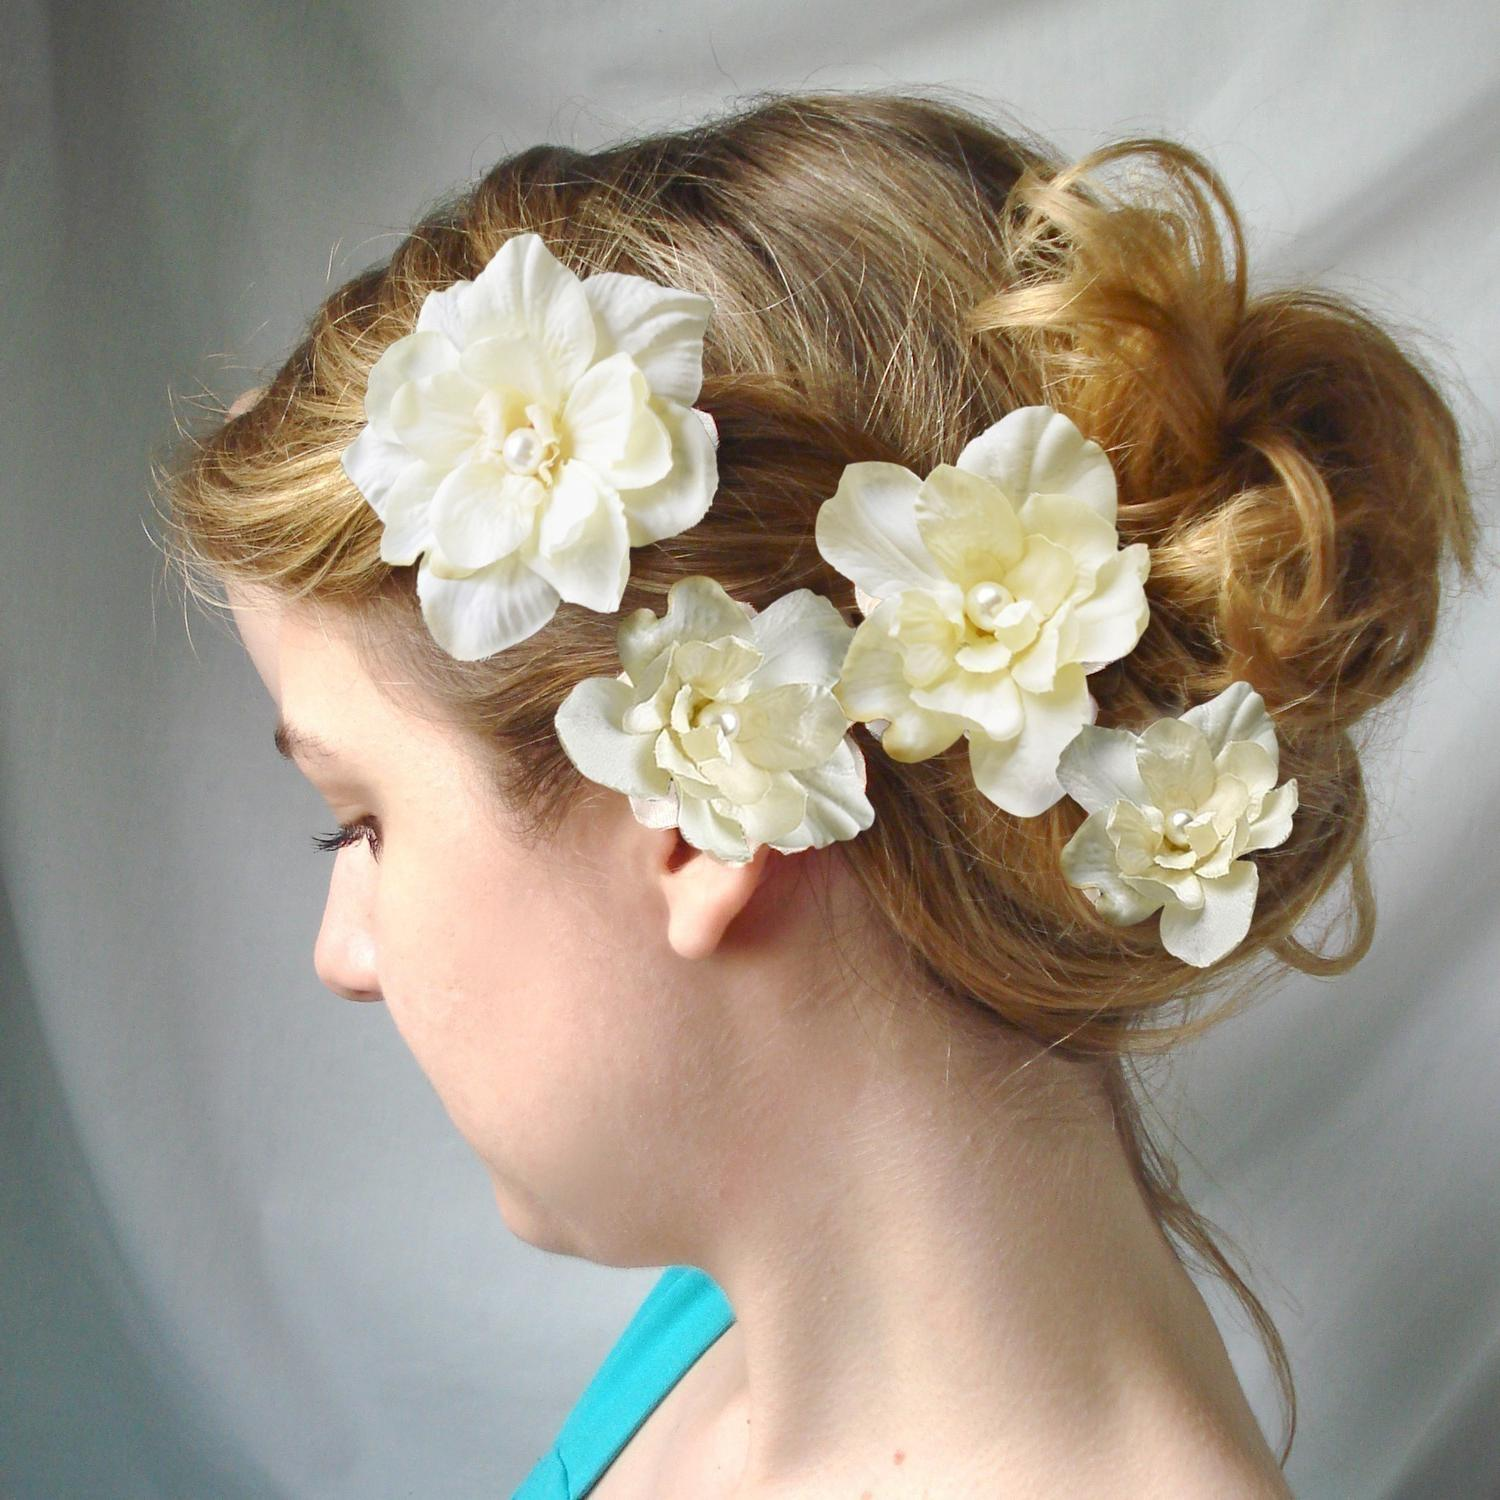 ivory flower hair clips - CUPIDS KISSES - wedding hair pins